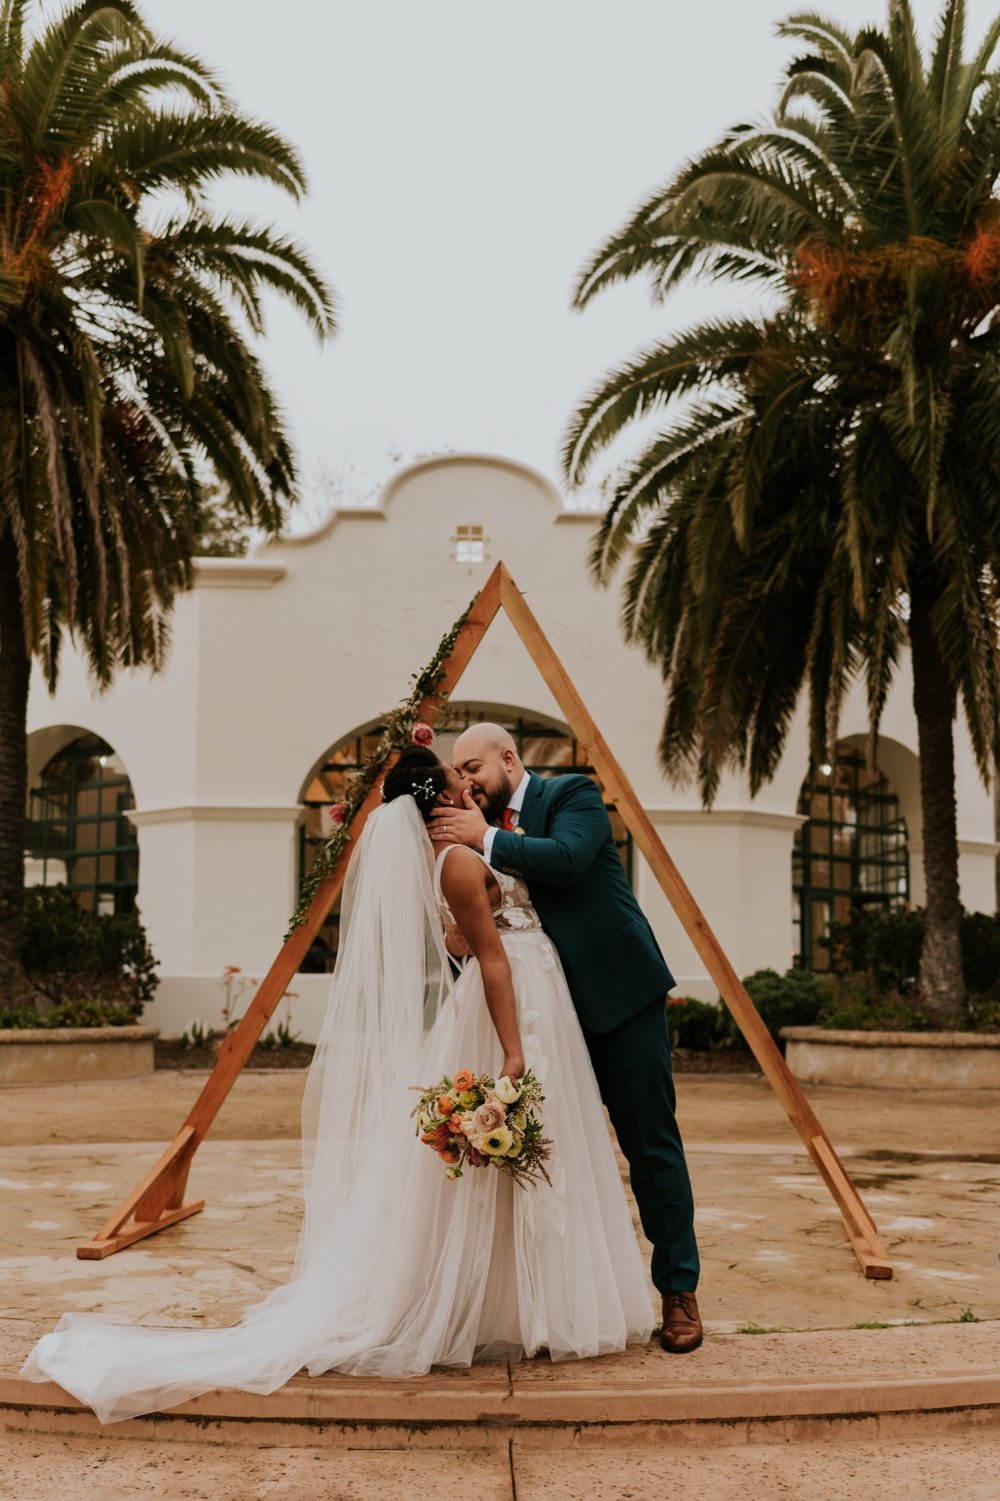 Santa Barbara Wedding at the Carousel House   Carrie Rogers Photography